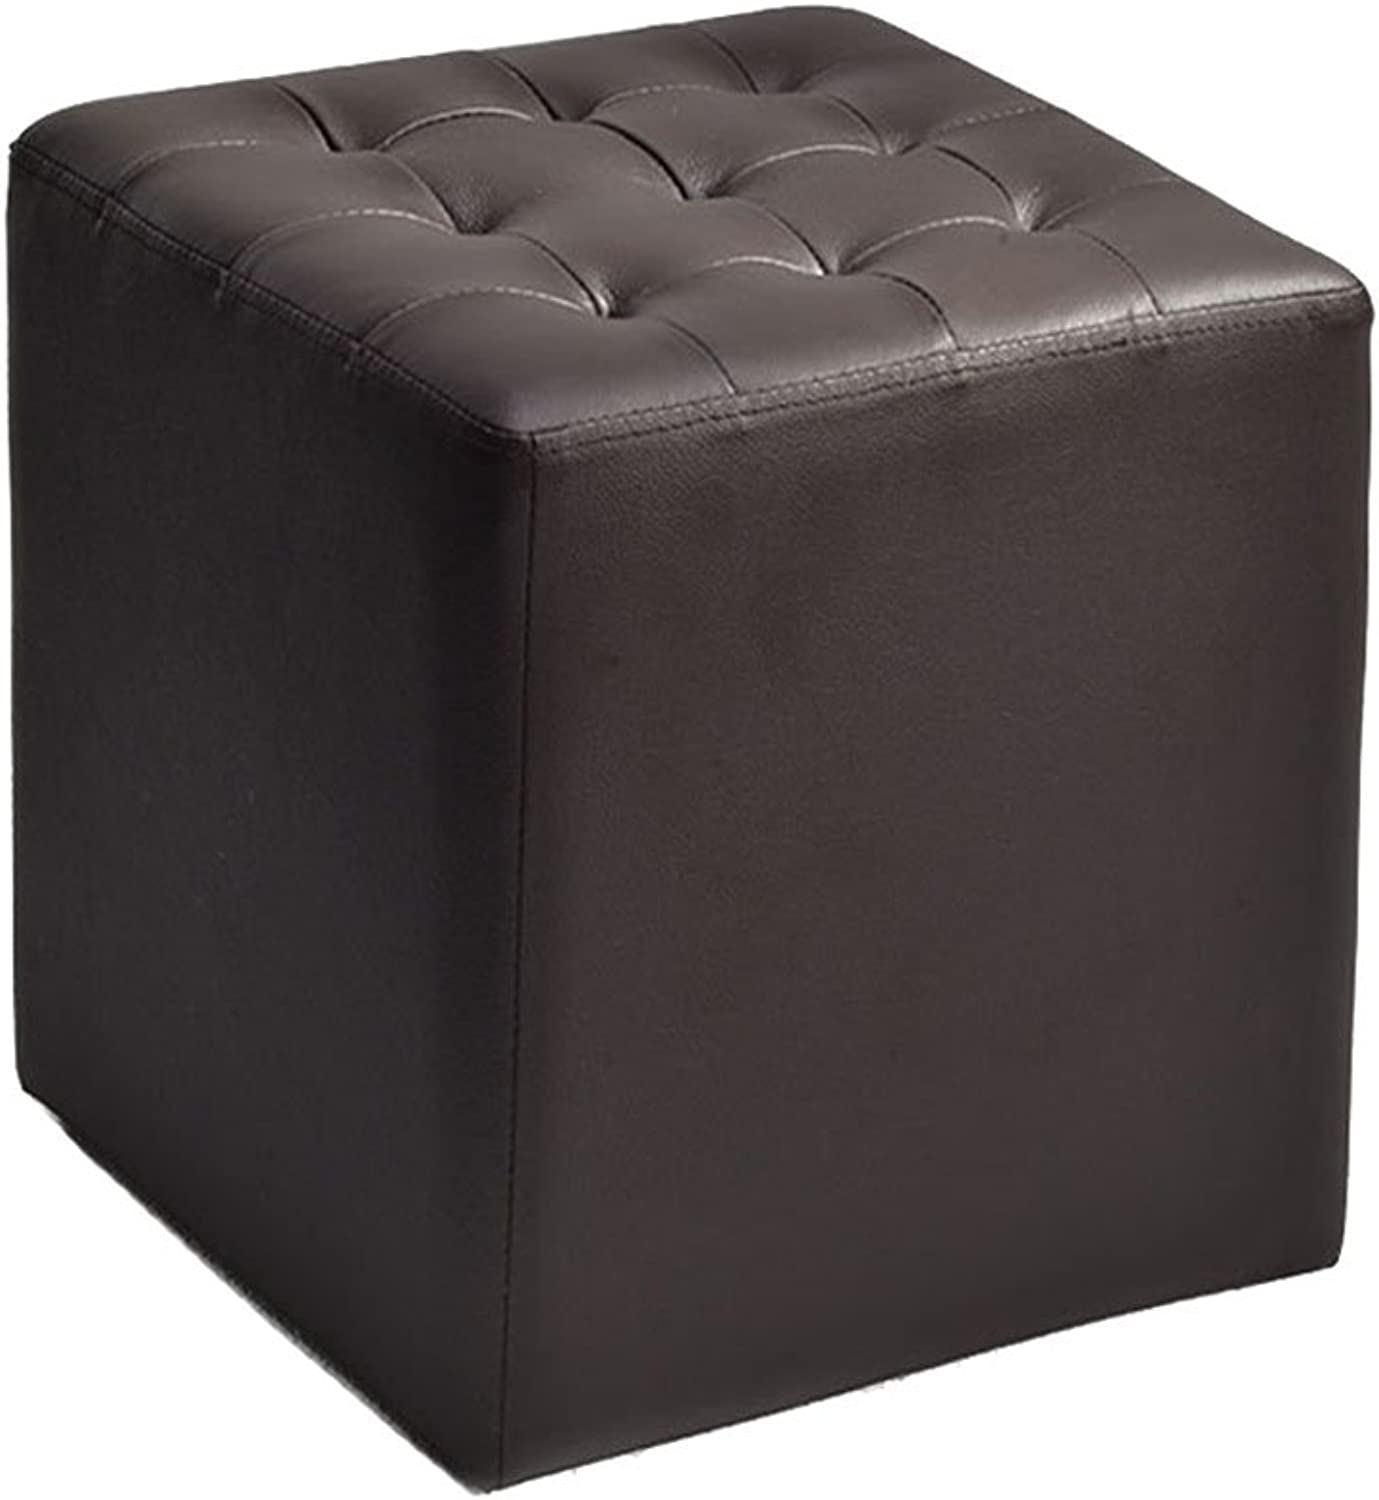 Footstools, Stool Padded Footstool Leather shoes Bench for Bedroom Living Room Balcony